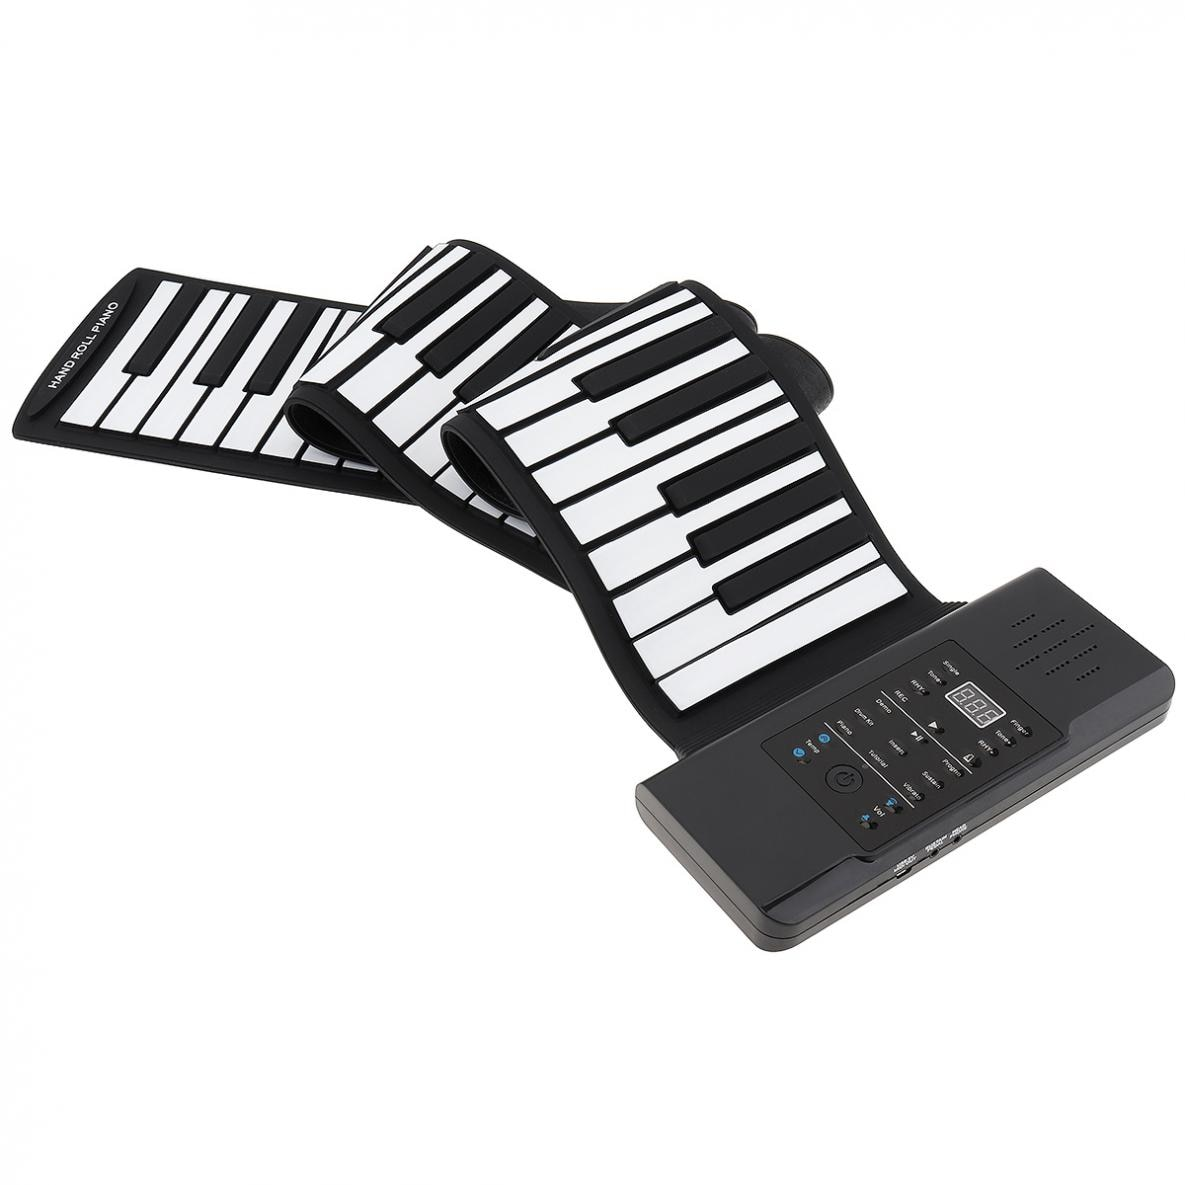 88 Keys MIDI Roll Up Electronic Piano Rechargeable Portable Silicone Flexible Keyboard Organ Built-in Speaker for Performance enlarge